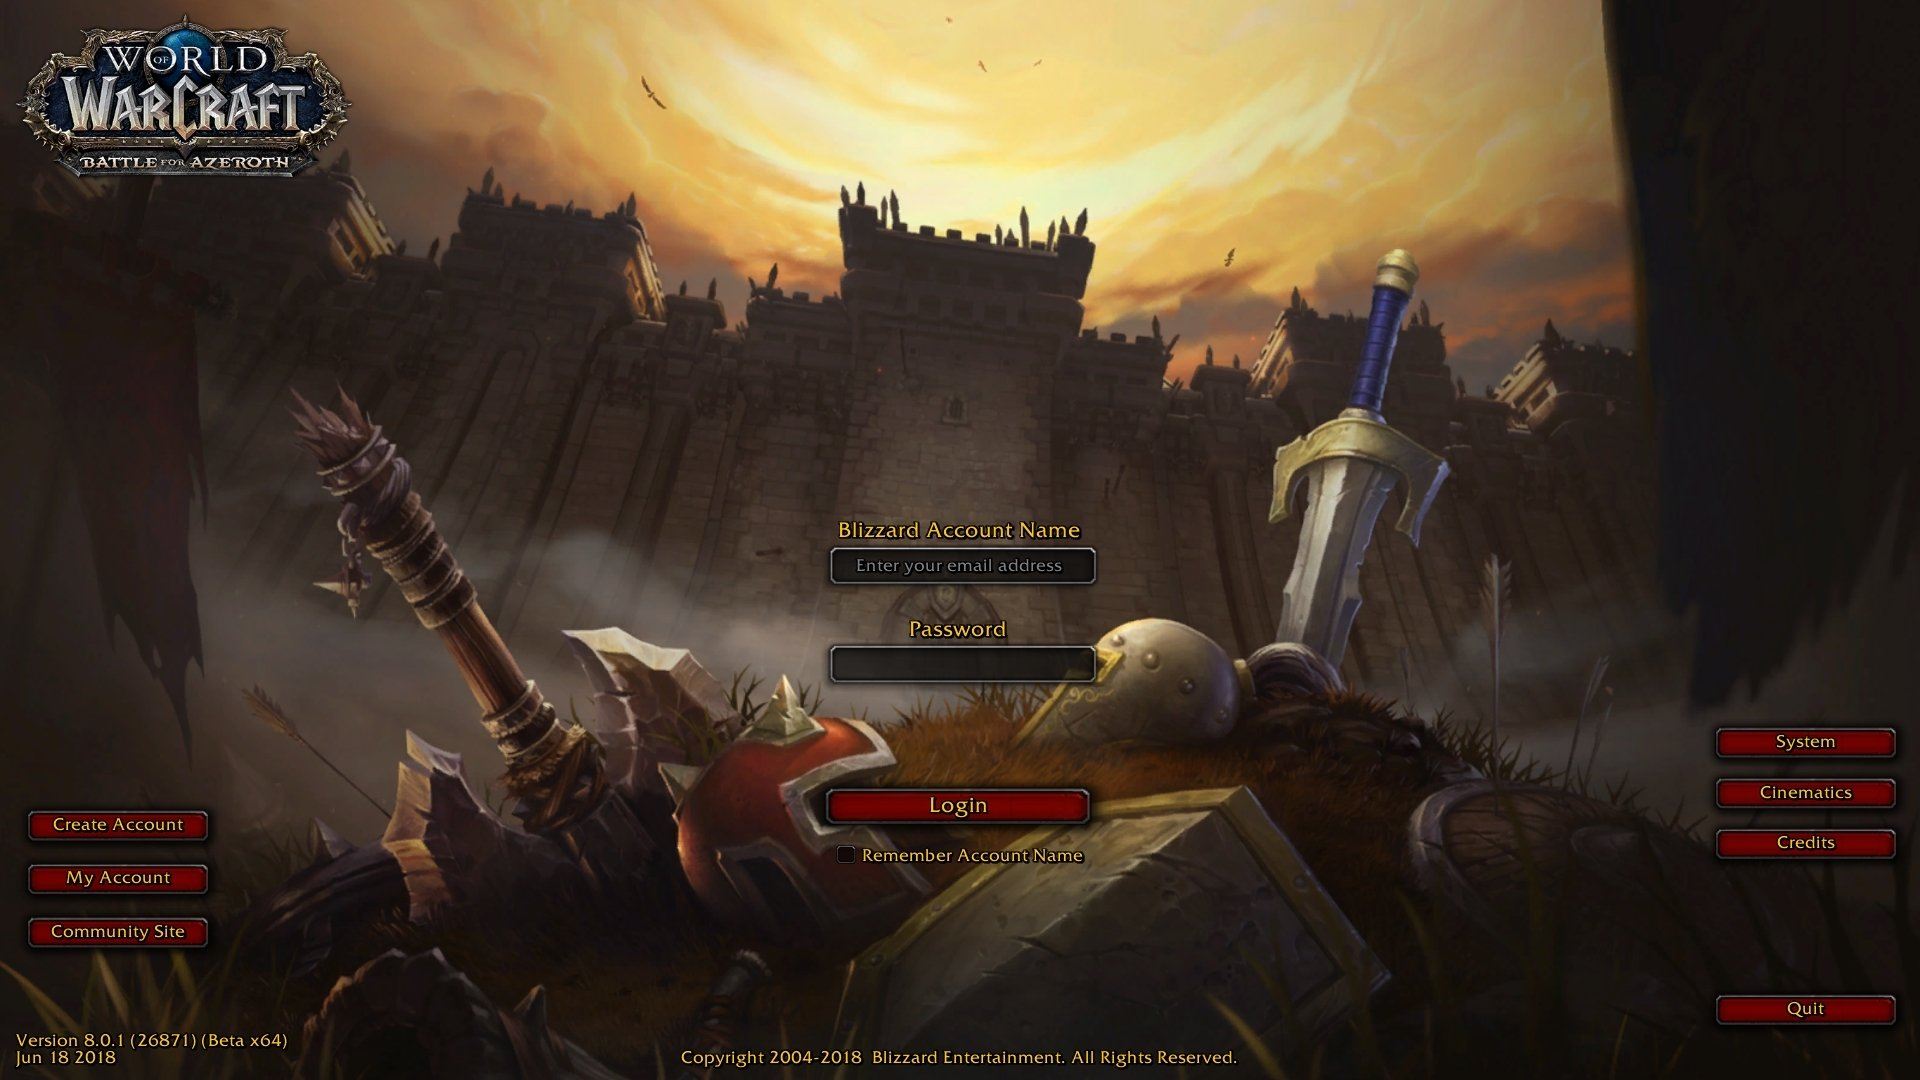 World of Warcraft: First look at Battle For Azeroth's login screen